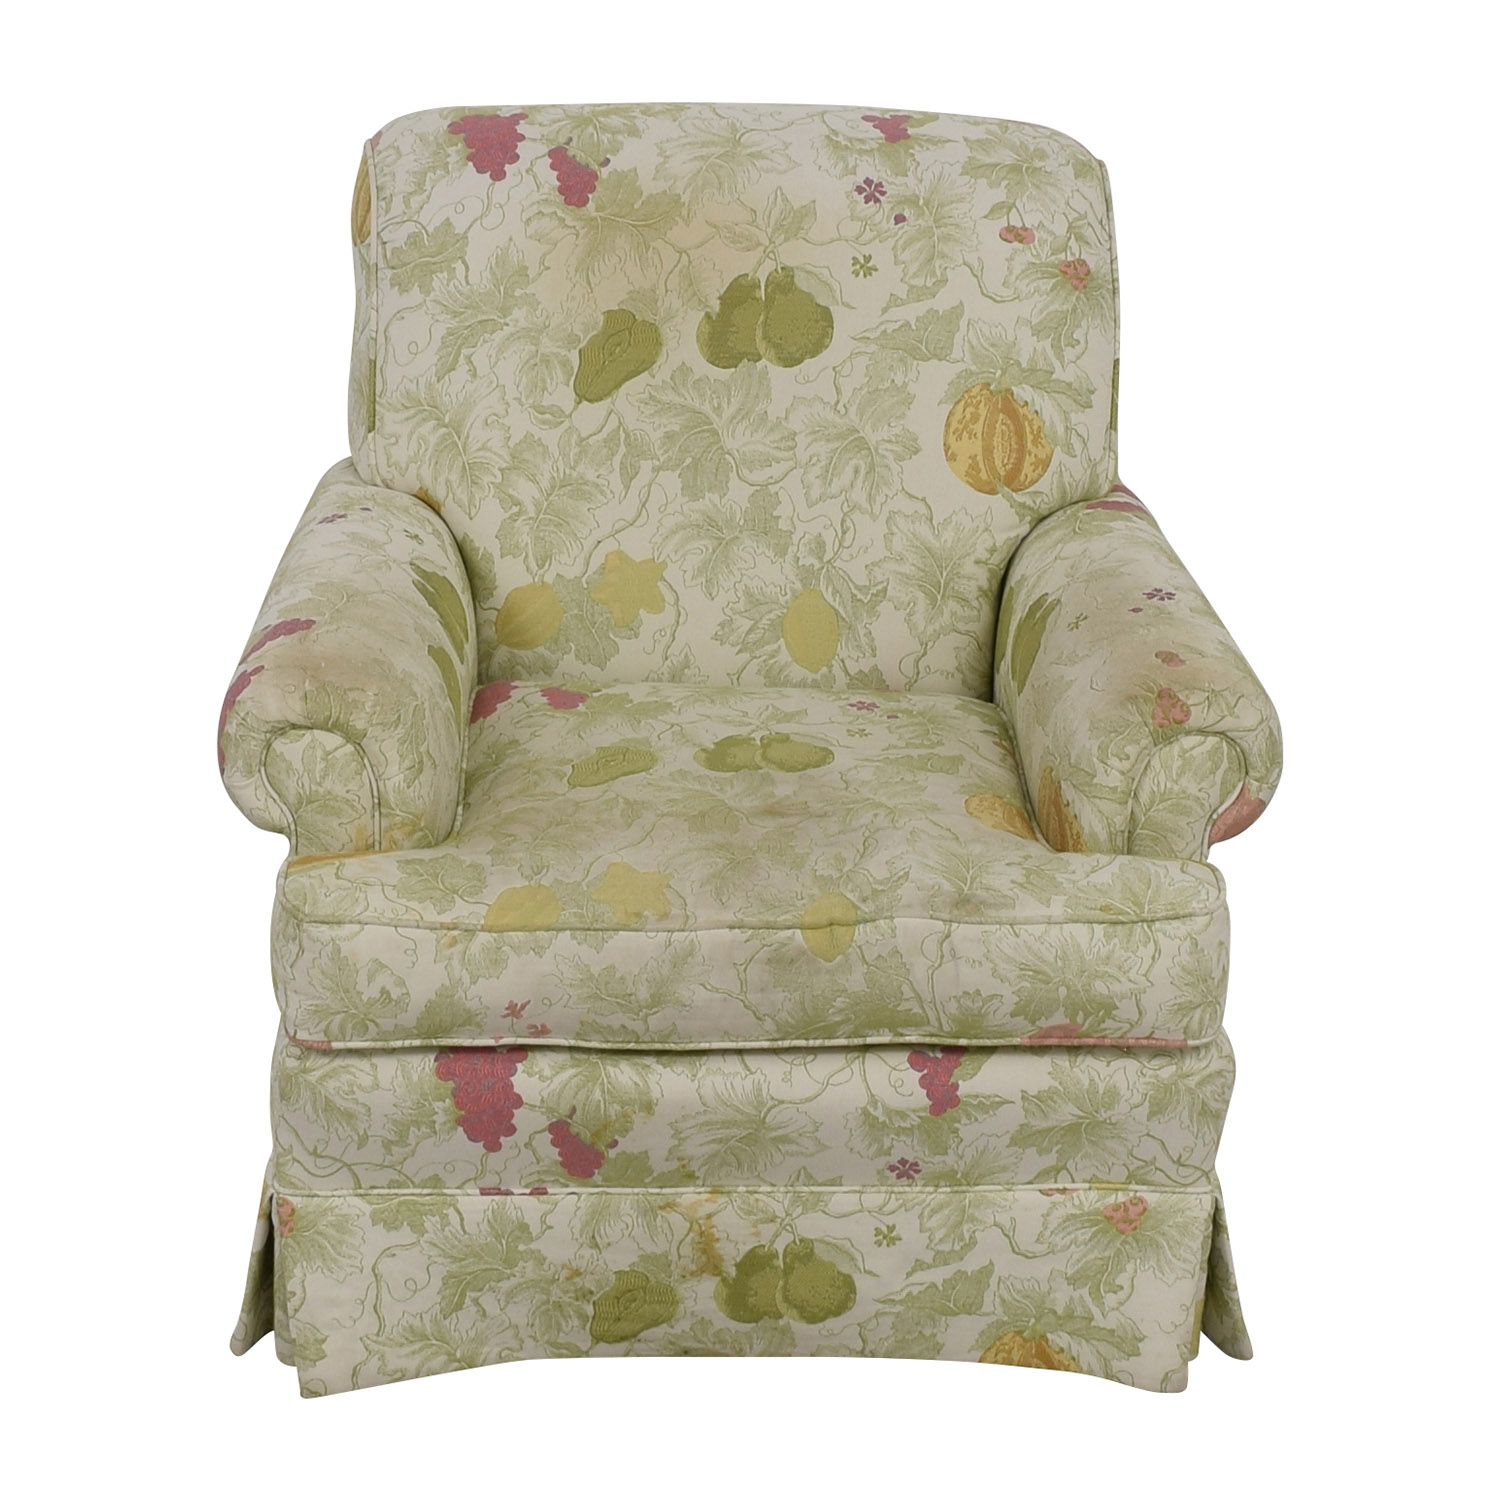 Sherrill Sherrill Fruit Patterned Accent Chair